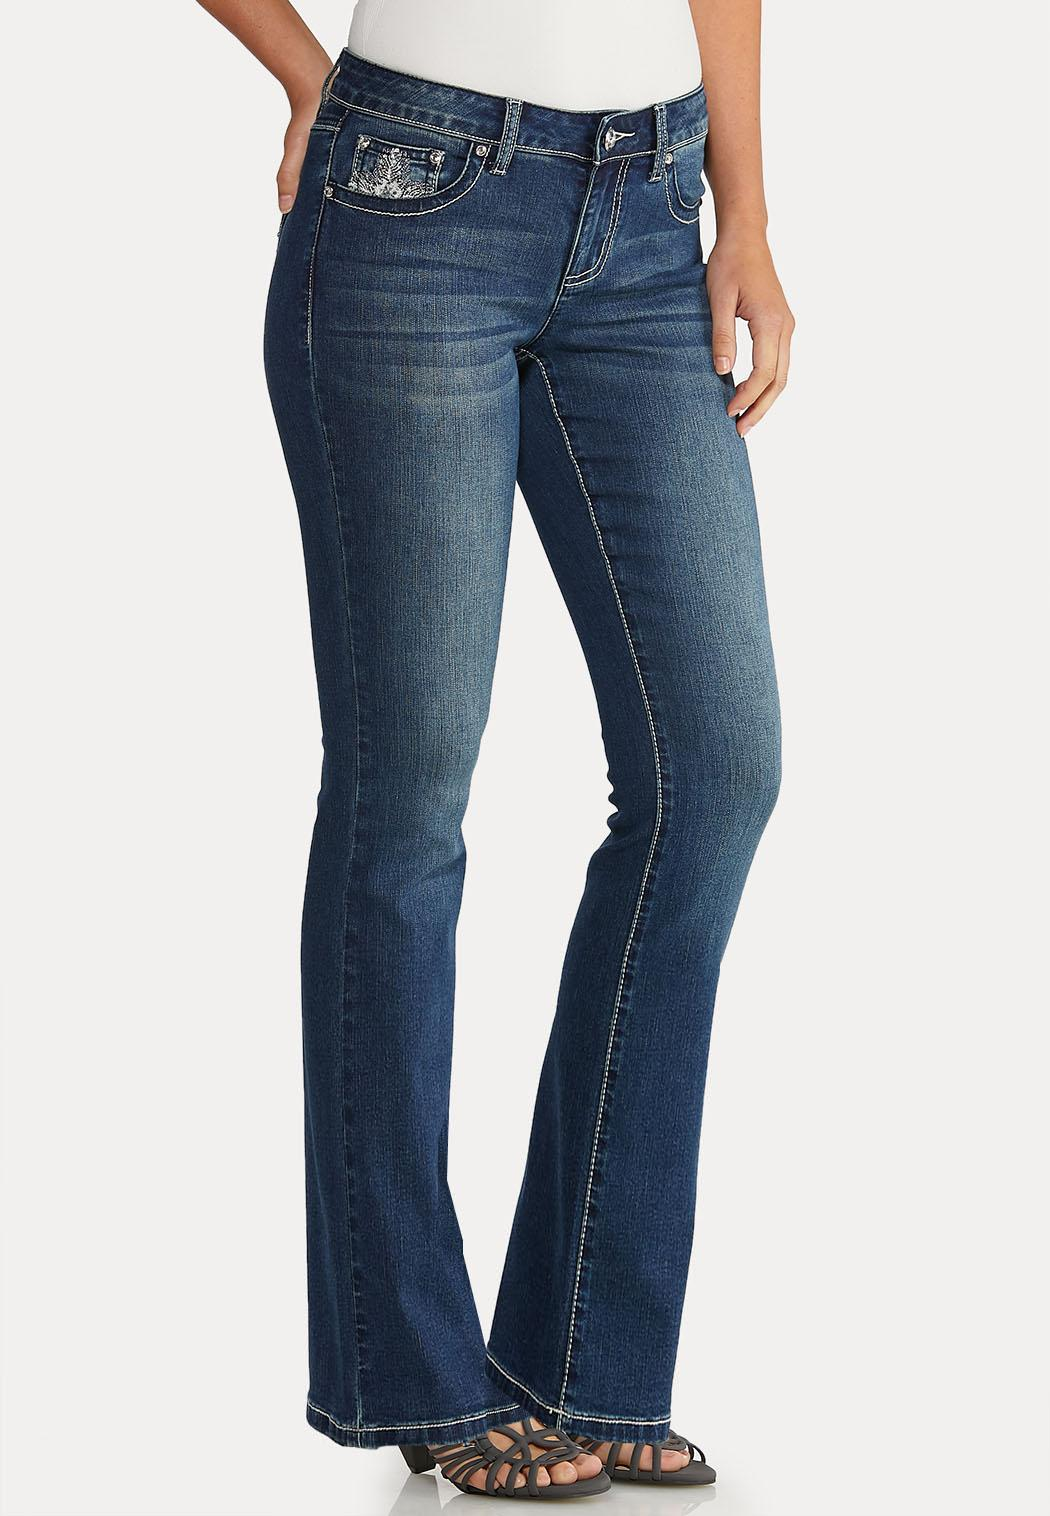 Bootcut Bling Feather Jeans (Item #43942916)